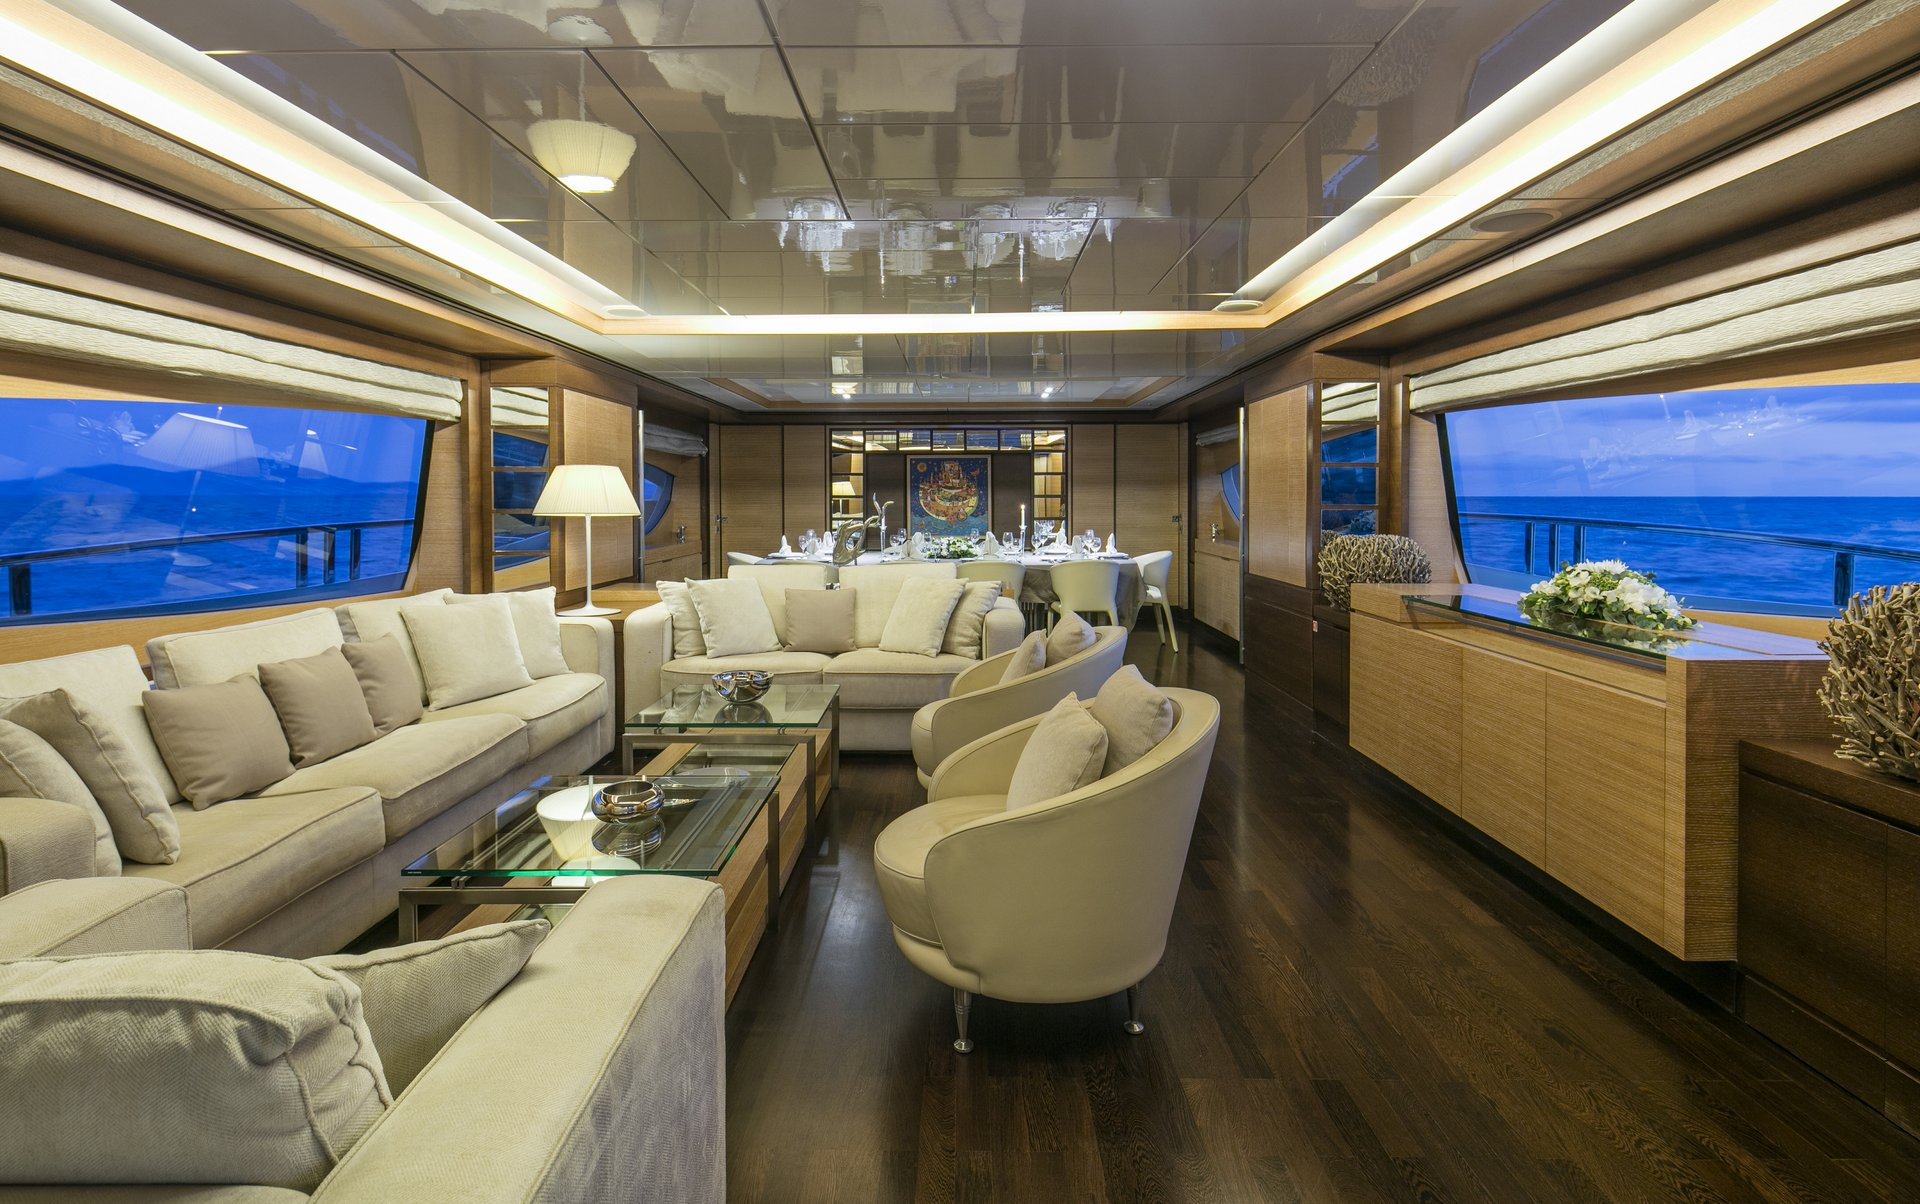 M/Y RINI yacht for charter full lounge